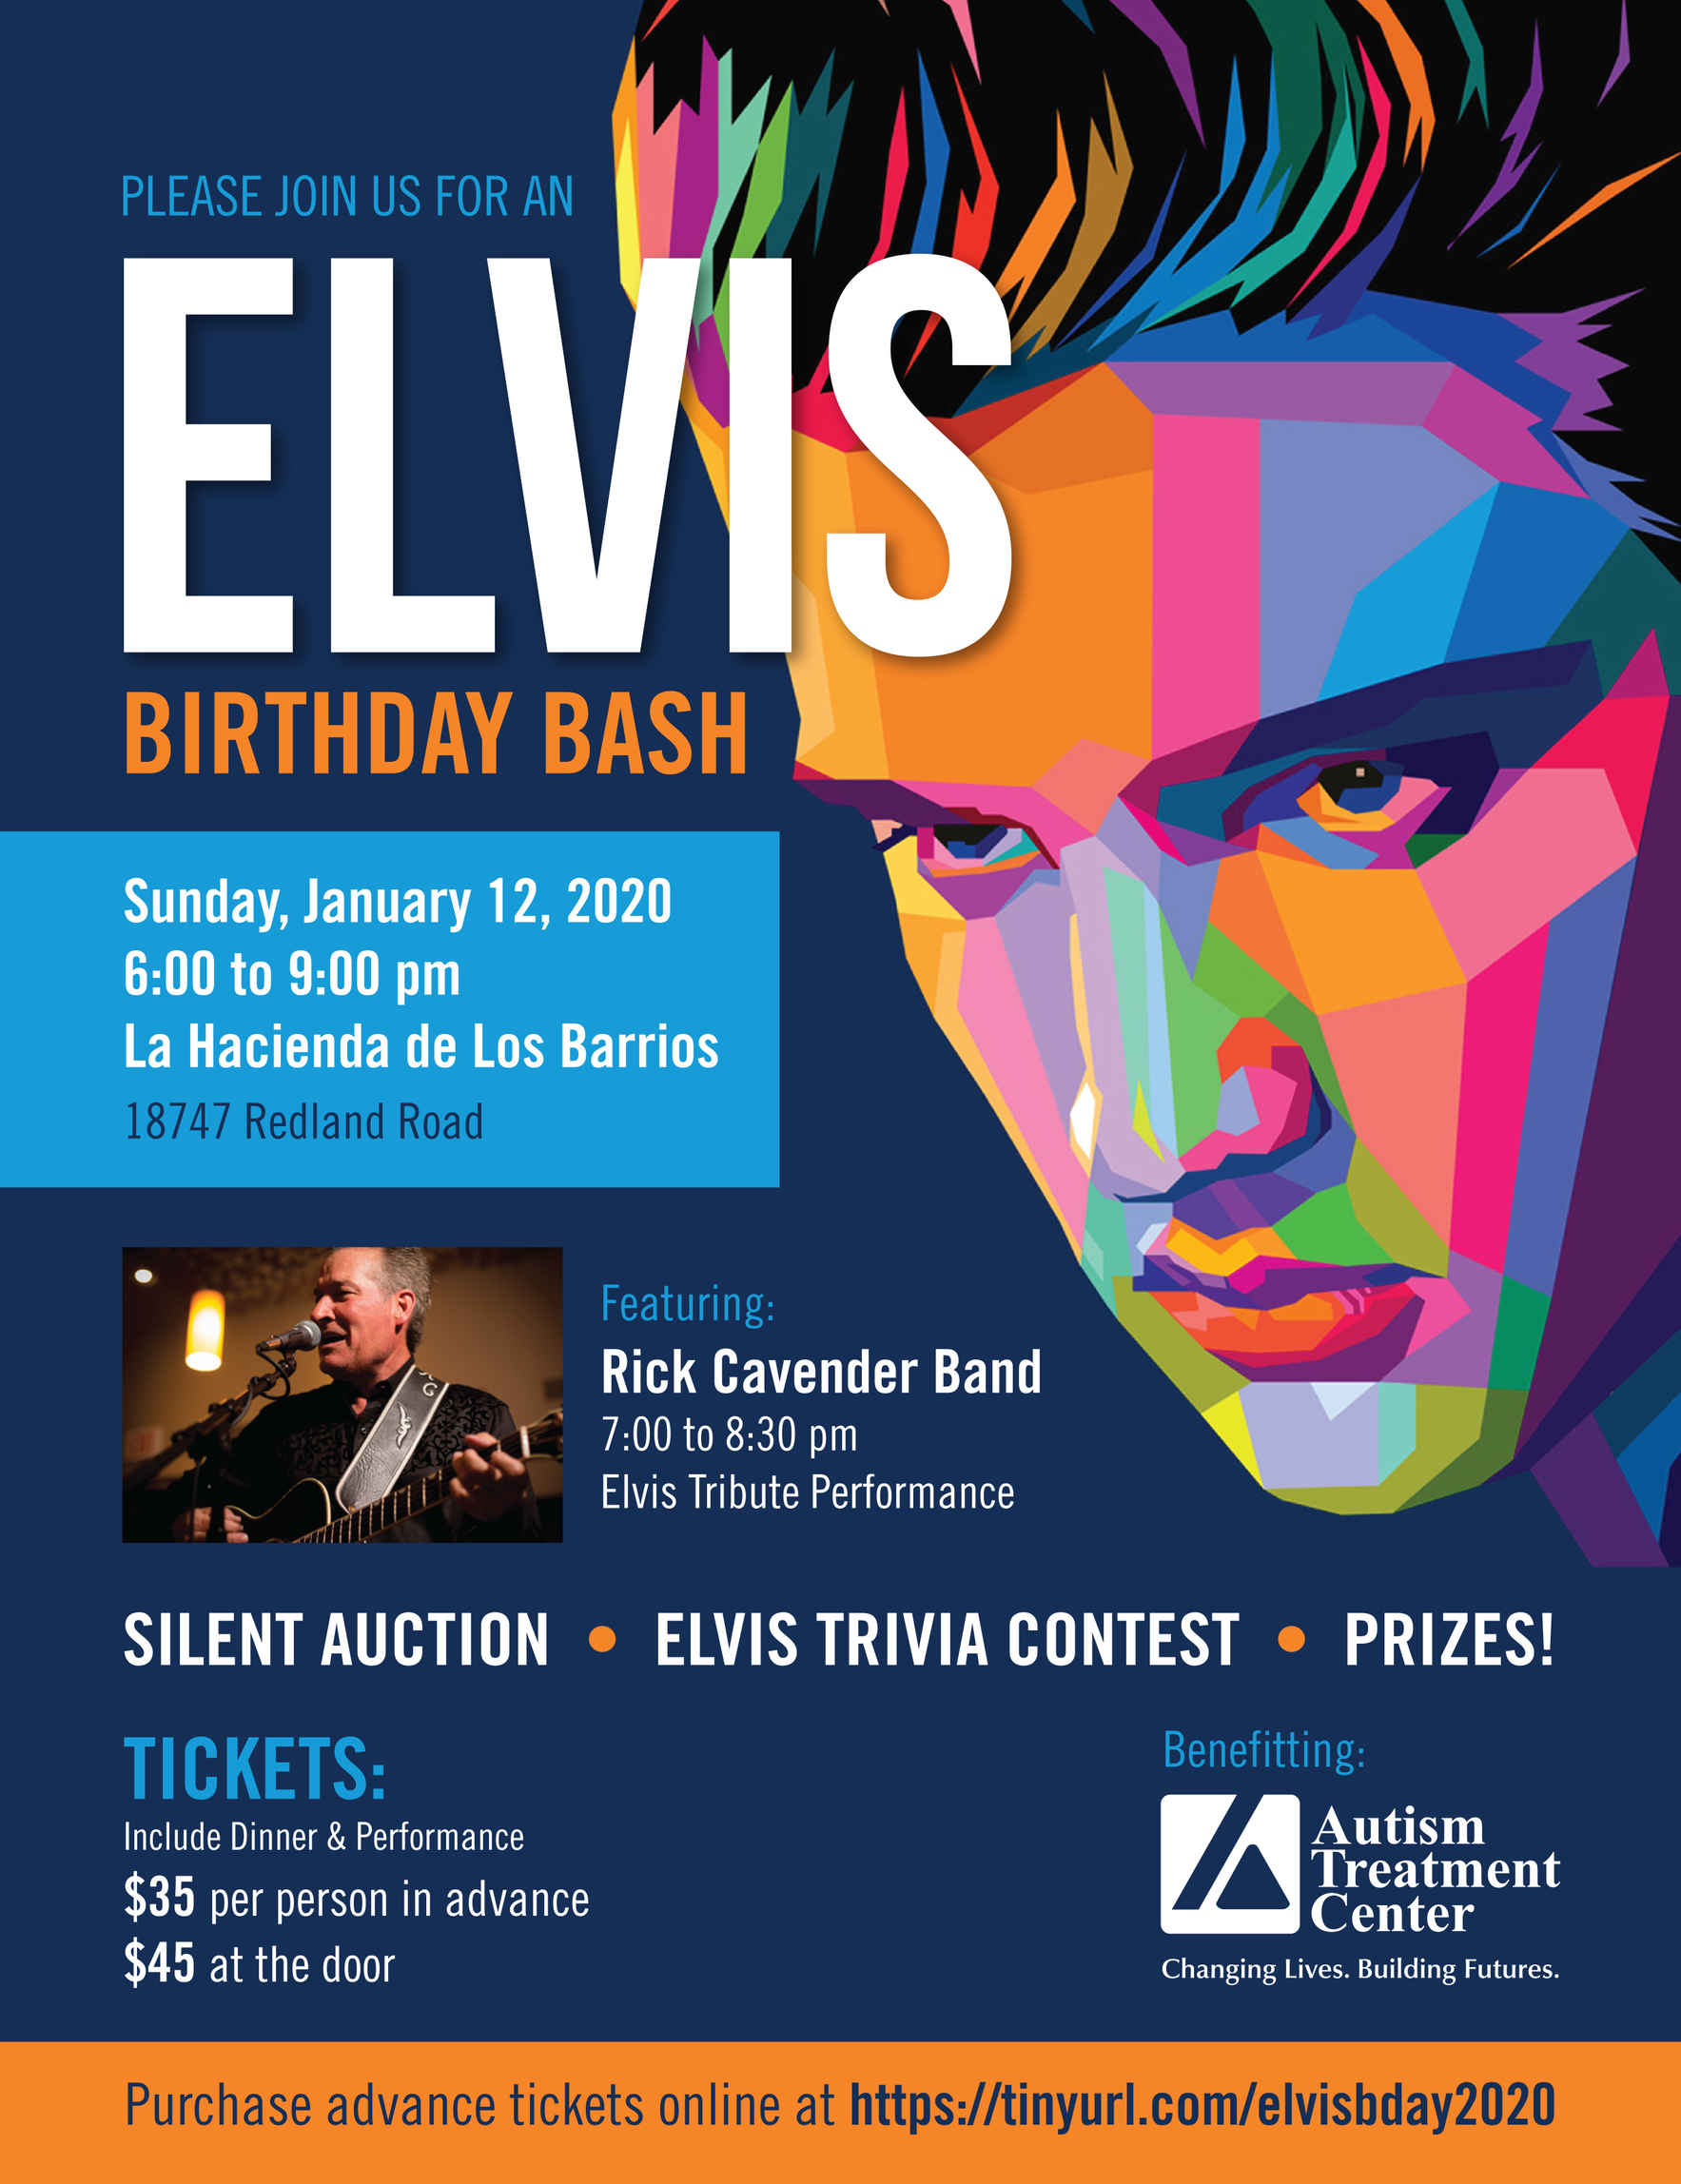 Elvis Birthday Bash 2020 image